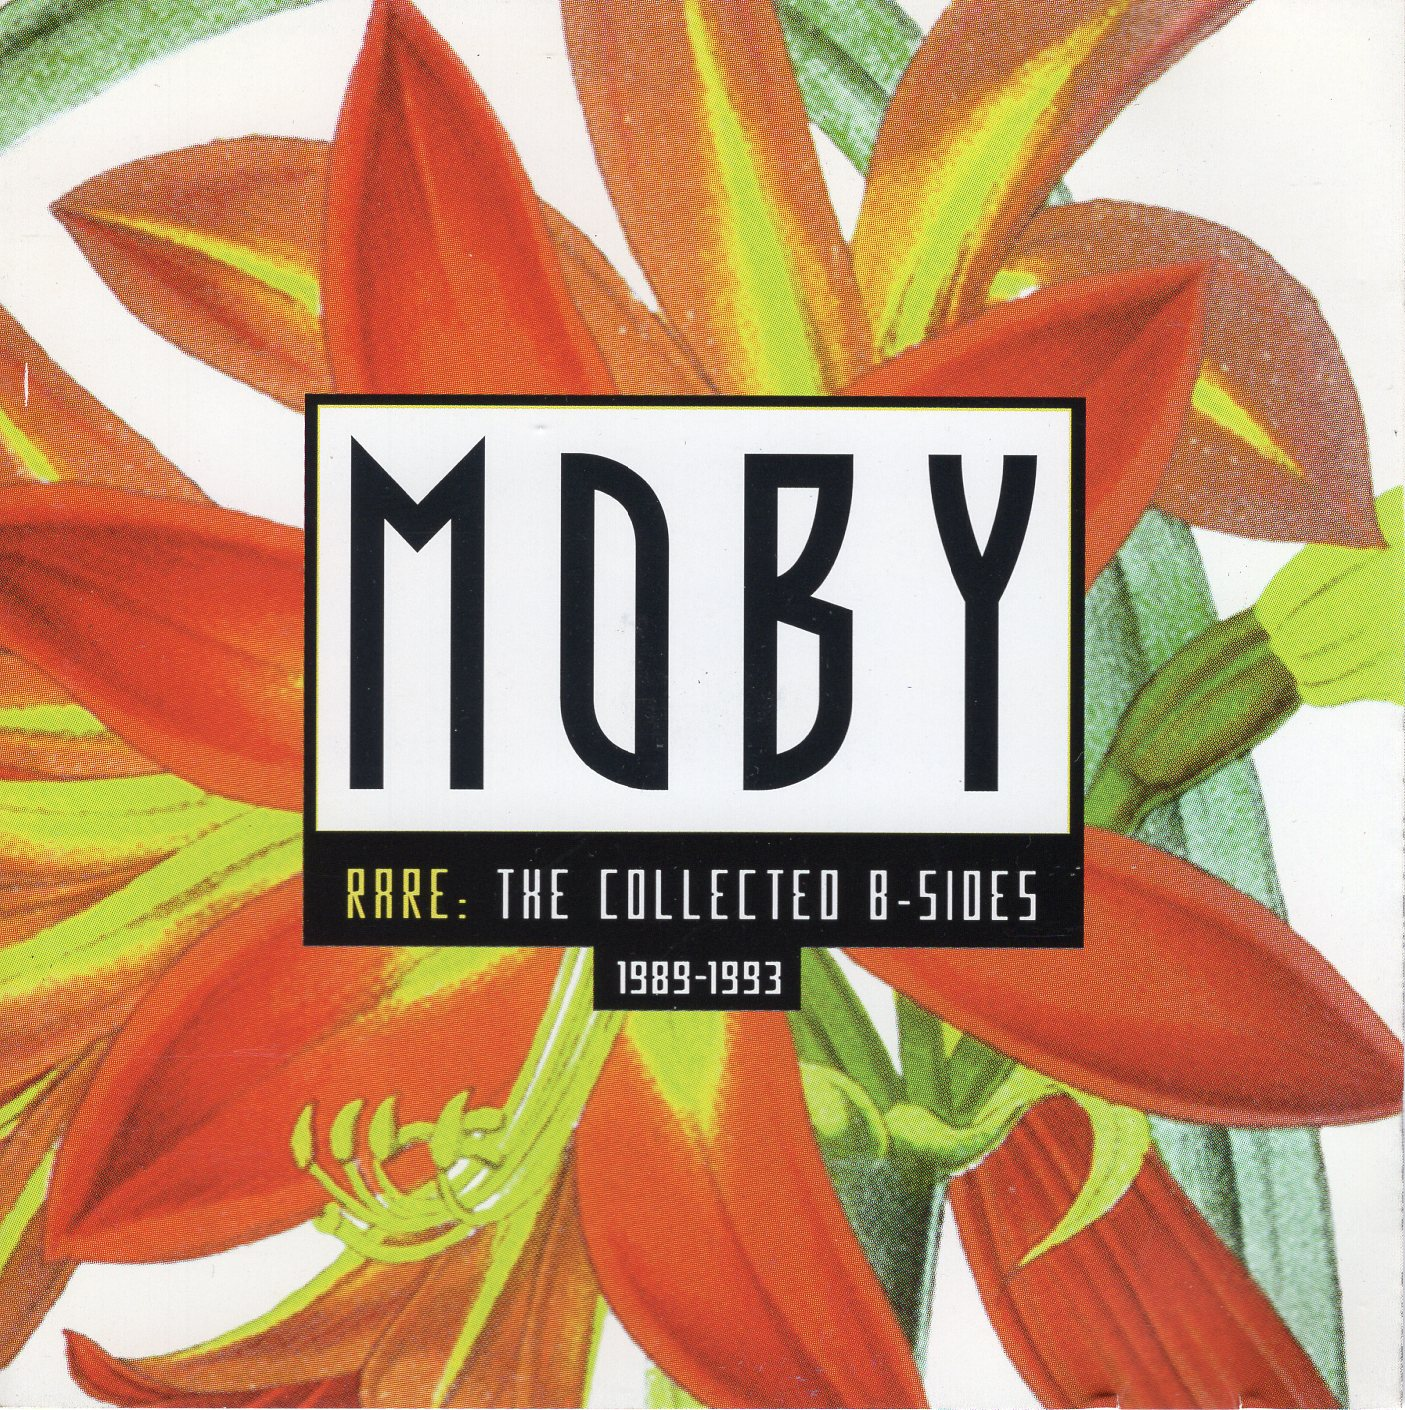 """Moby-Rare: The Collection B-Sides 1989-1993"" Moby"